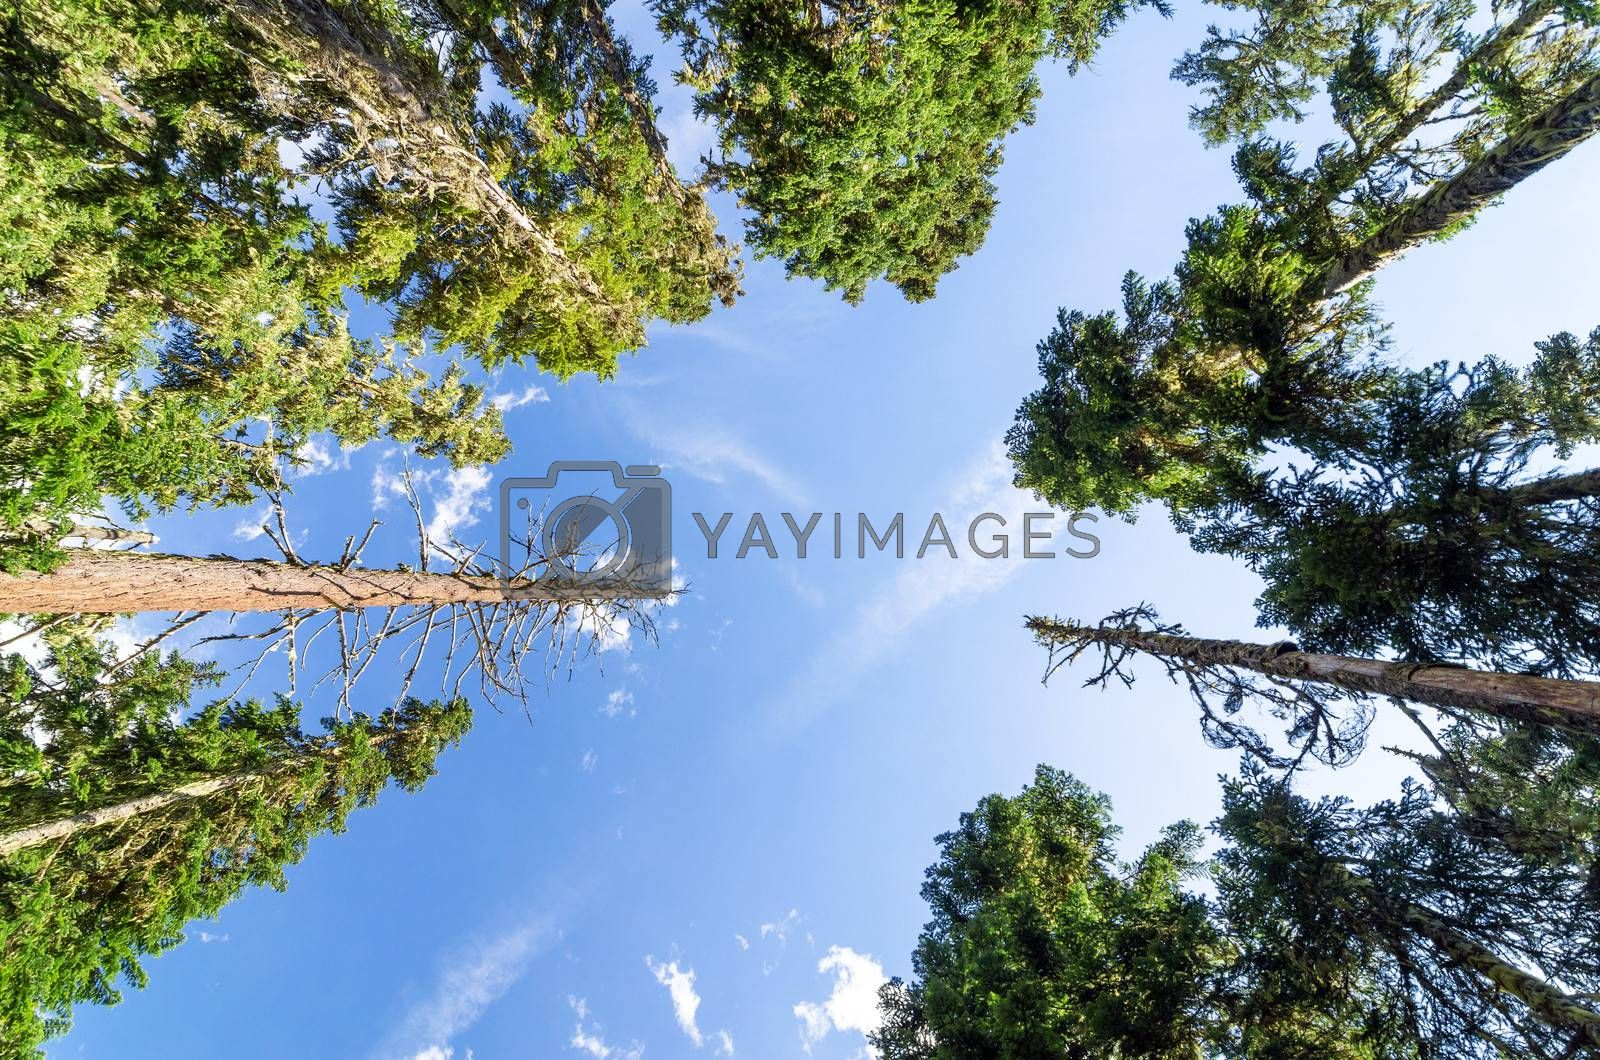 Looking up at towering pine trees